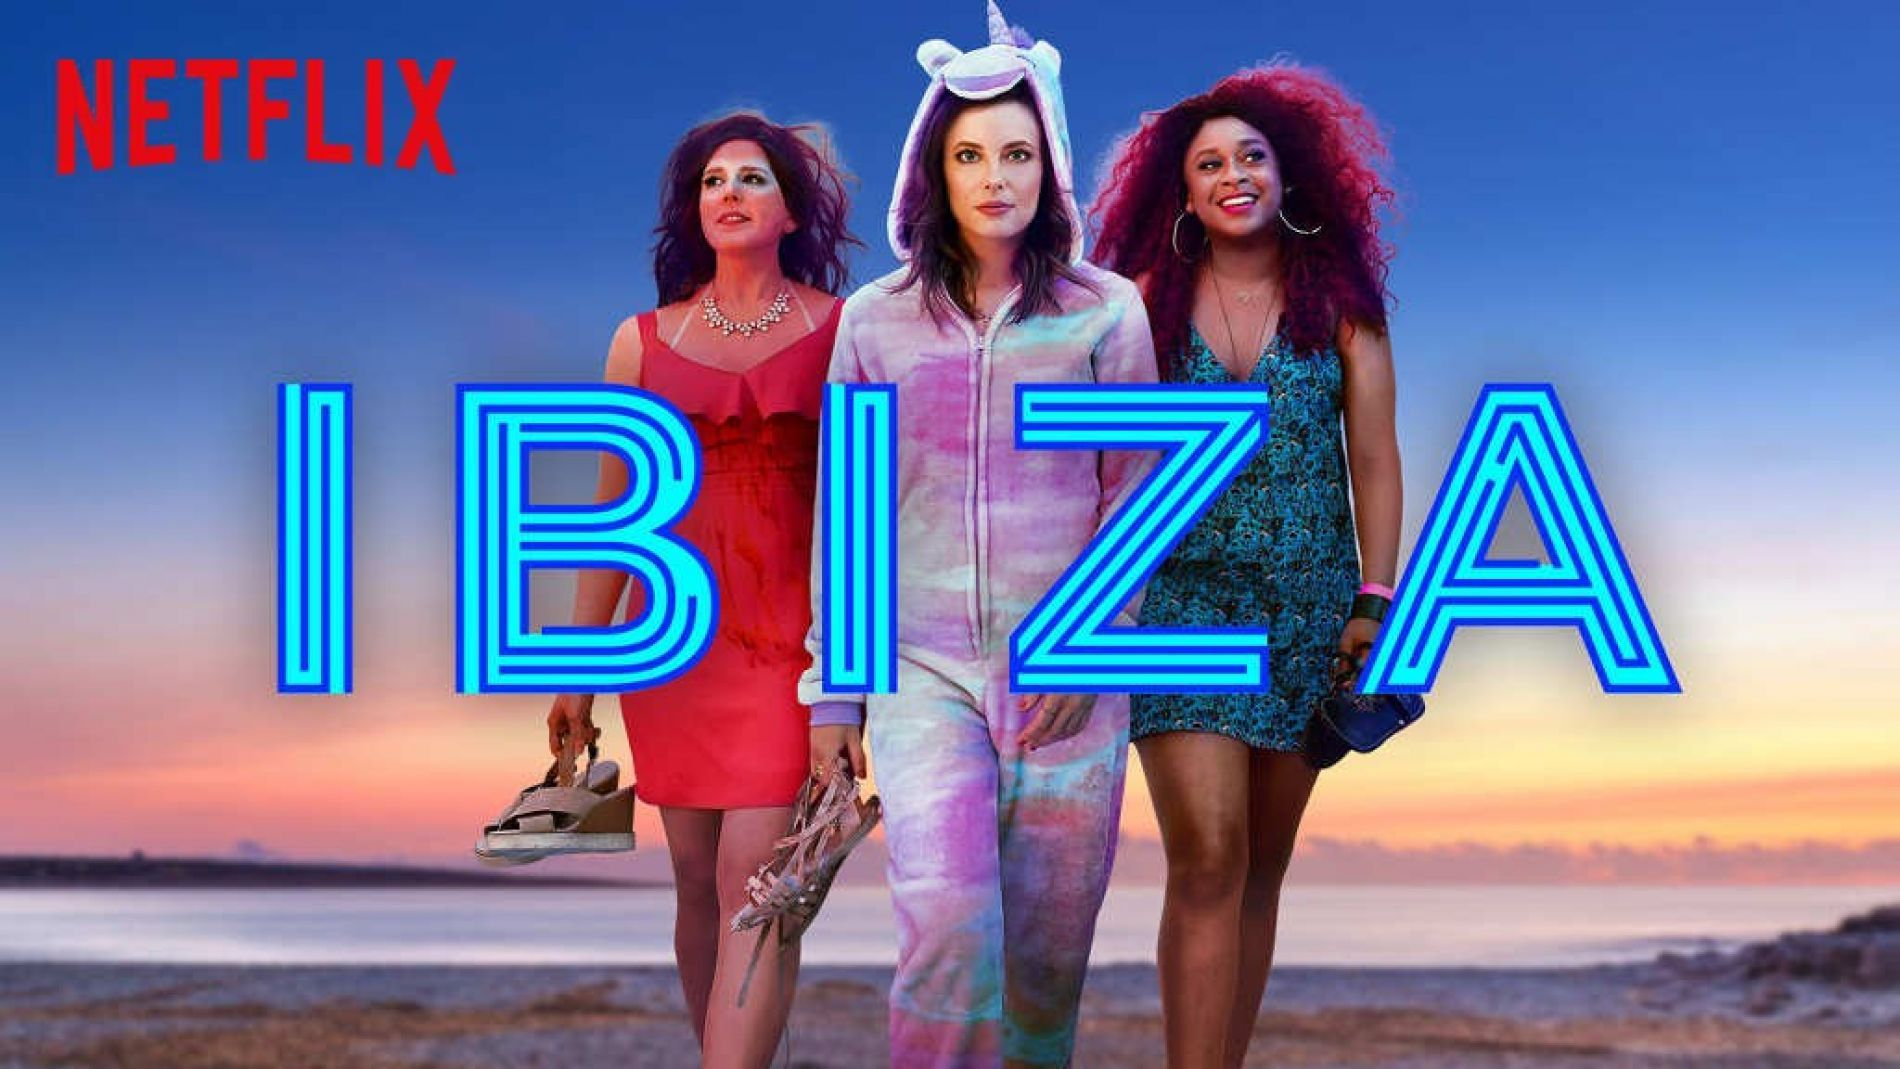 5 Spinnin' & MusicAllStars songs in Netflix 'Ibiza' (Movie)